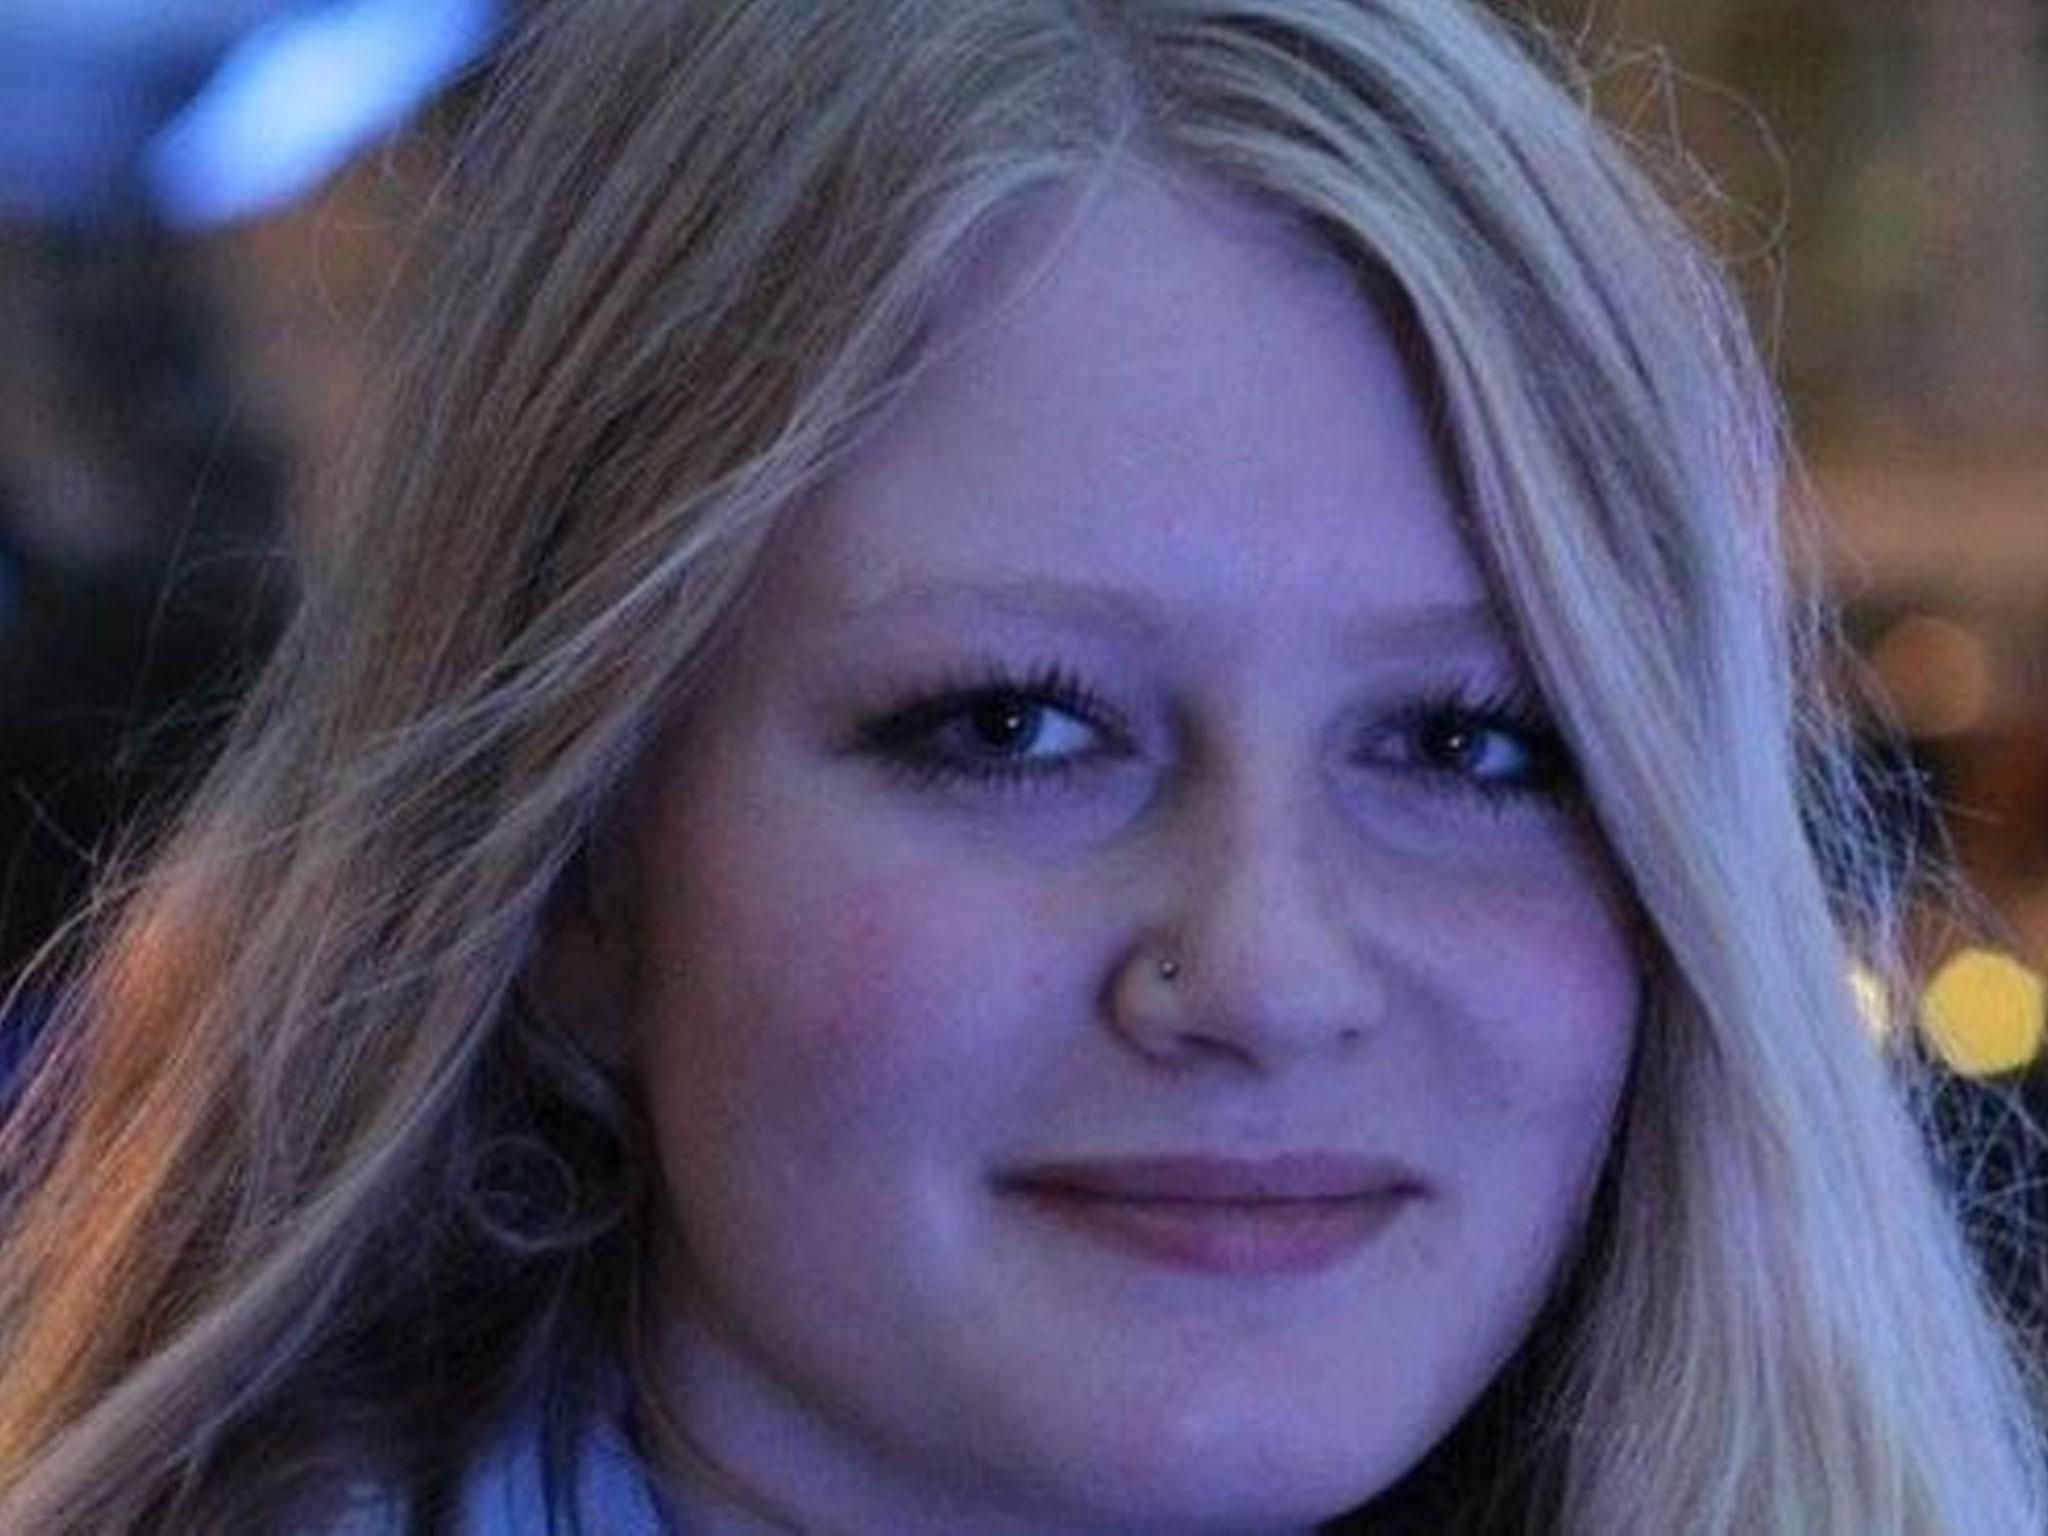 Gaia Pope: Family identify man they say raped her before death and urge other victims to come forward